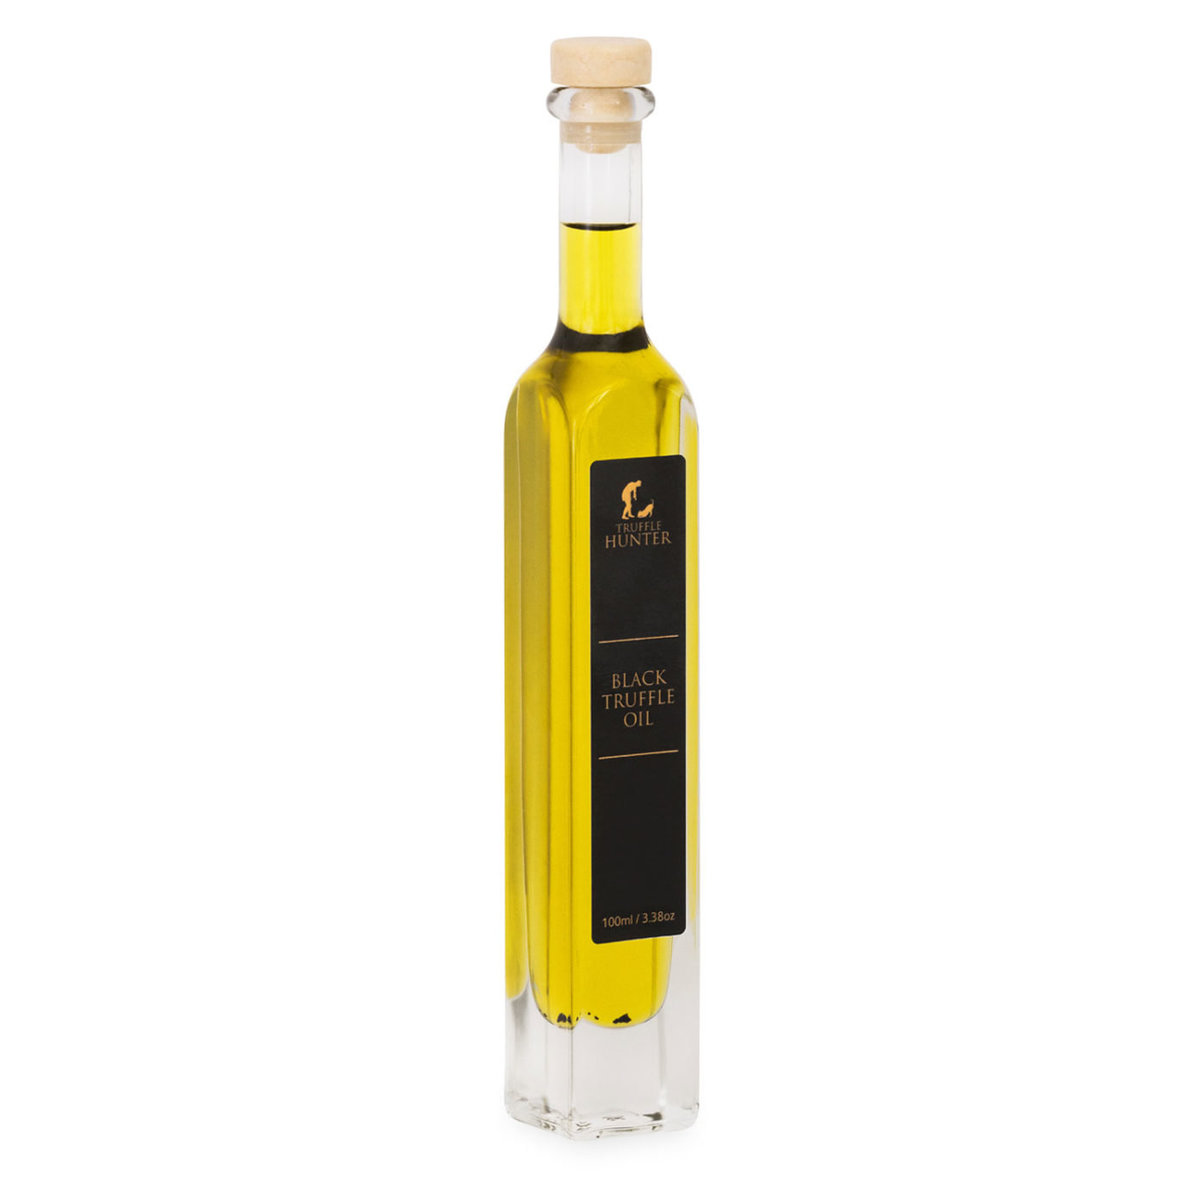 Black Truffle Oil 100ml (Double-concentrated)